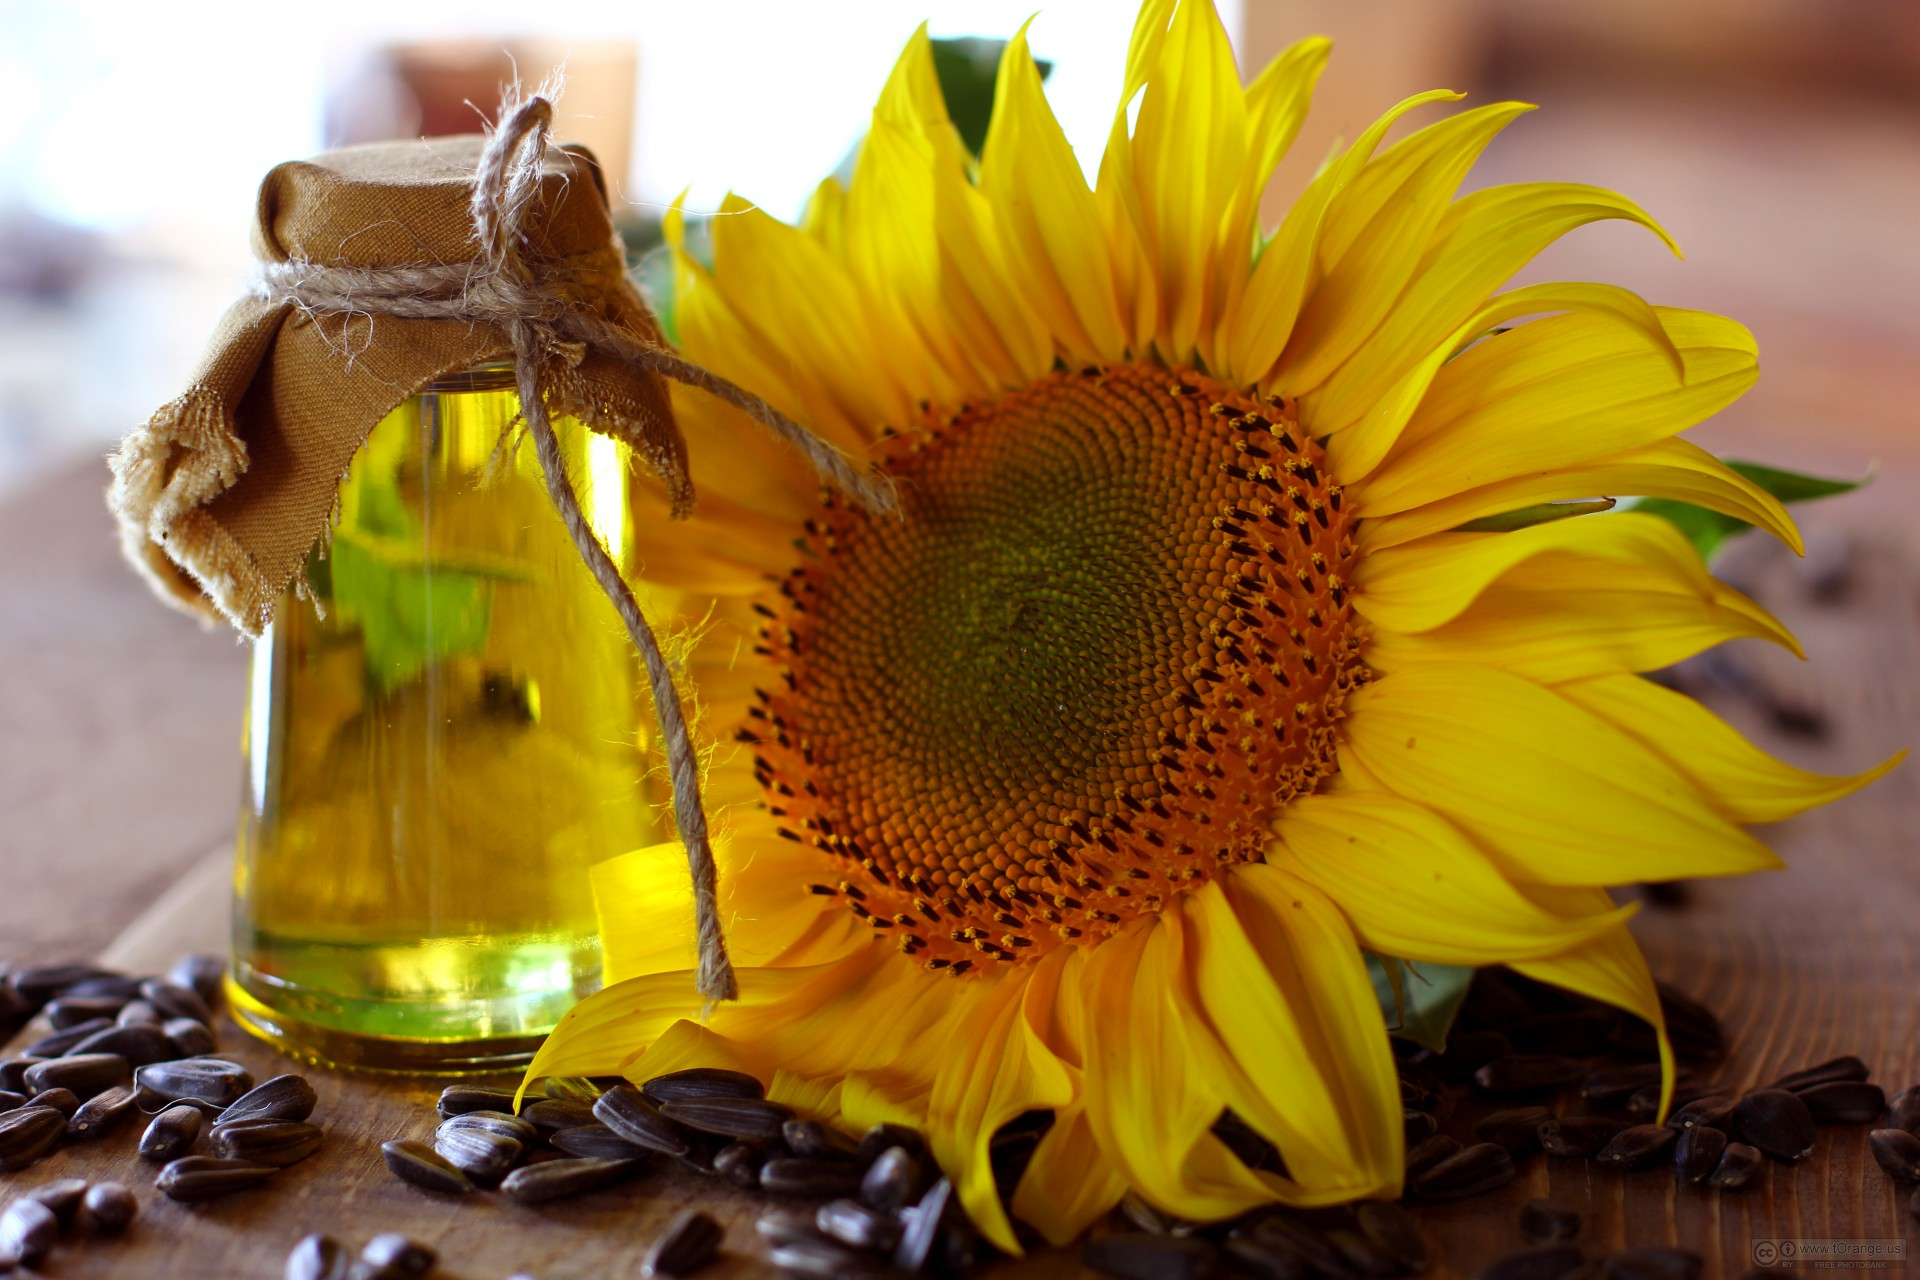 Analysts predict a decrease in prices for Ukrainian sunflower oil - 17.03.2020